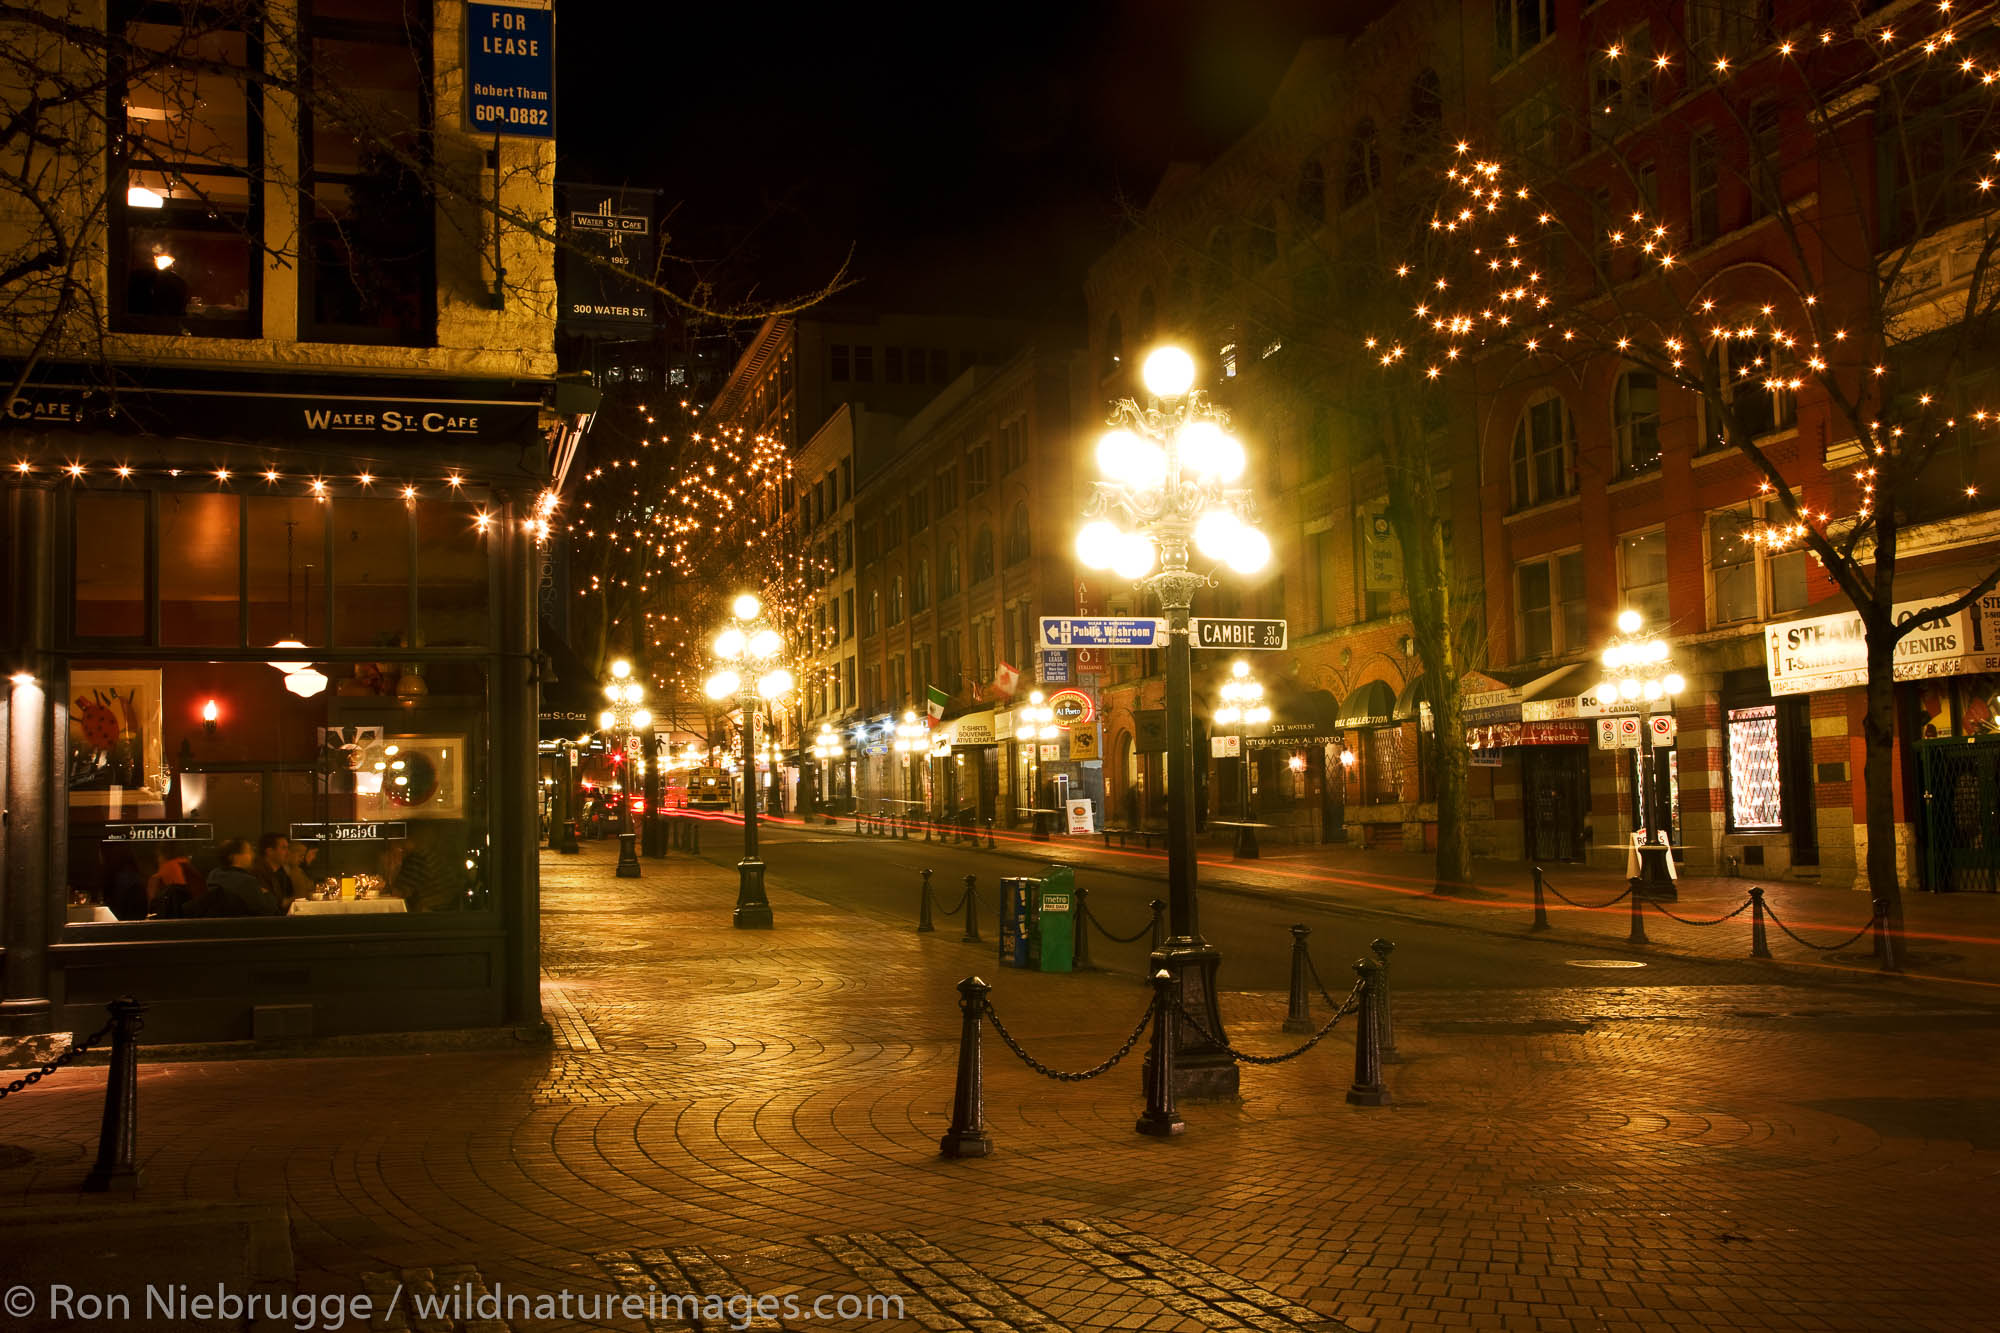 The Gastown area, Vancouver, British Columbia, Canada.